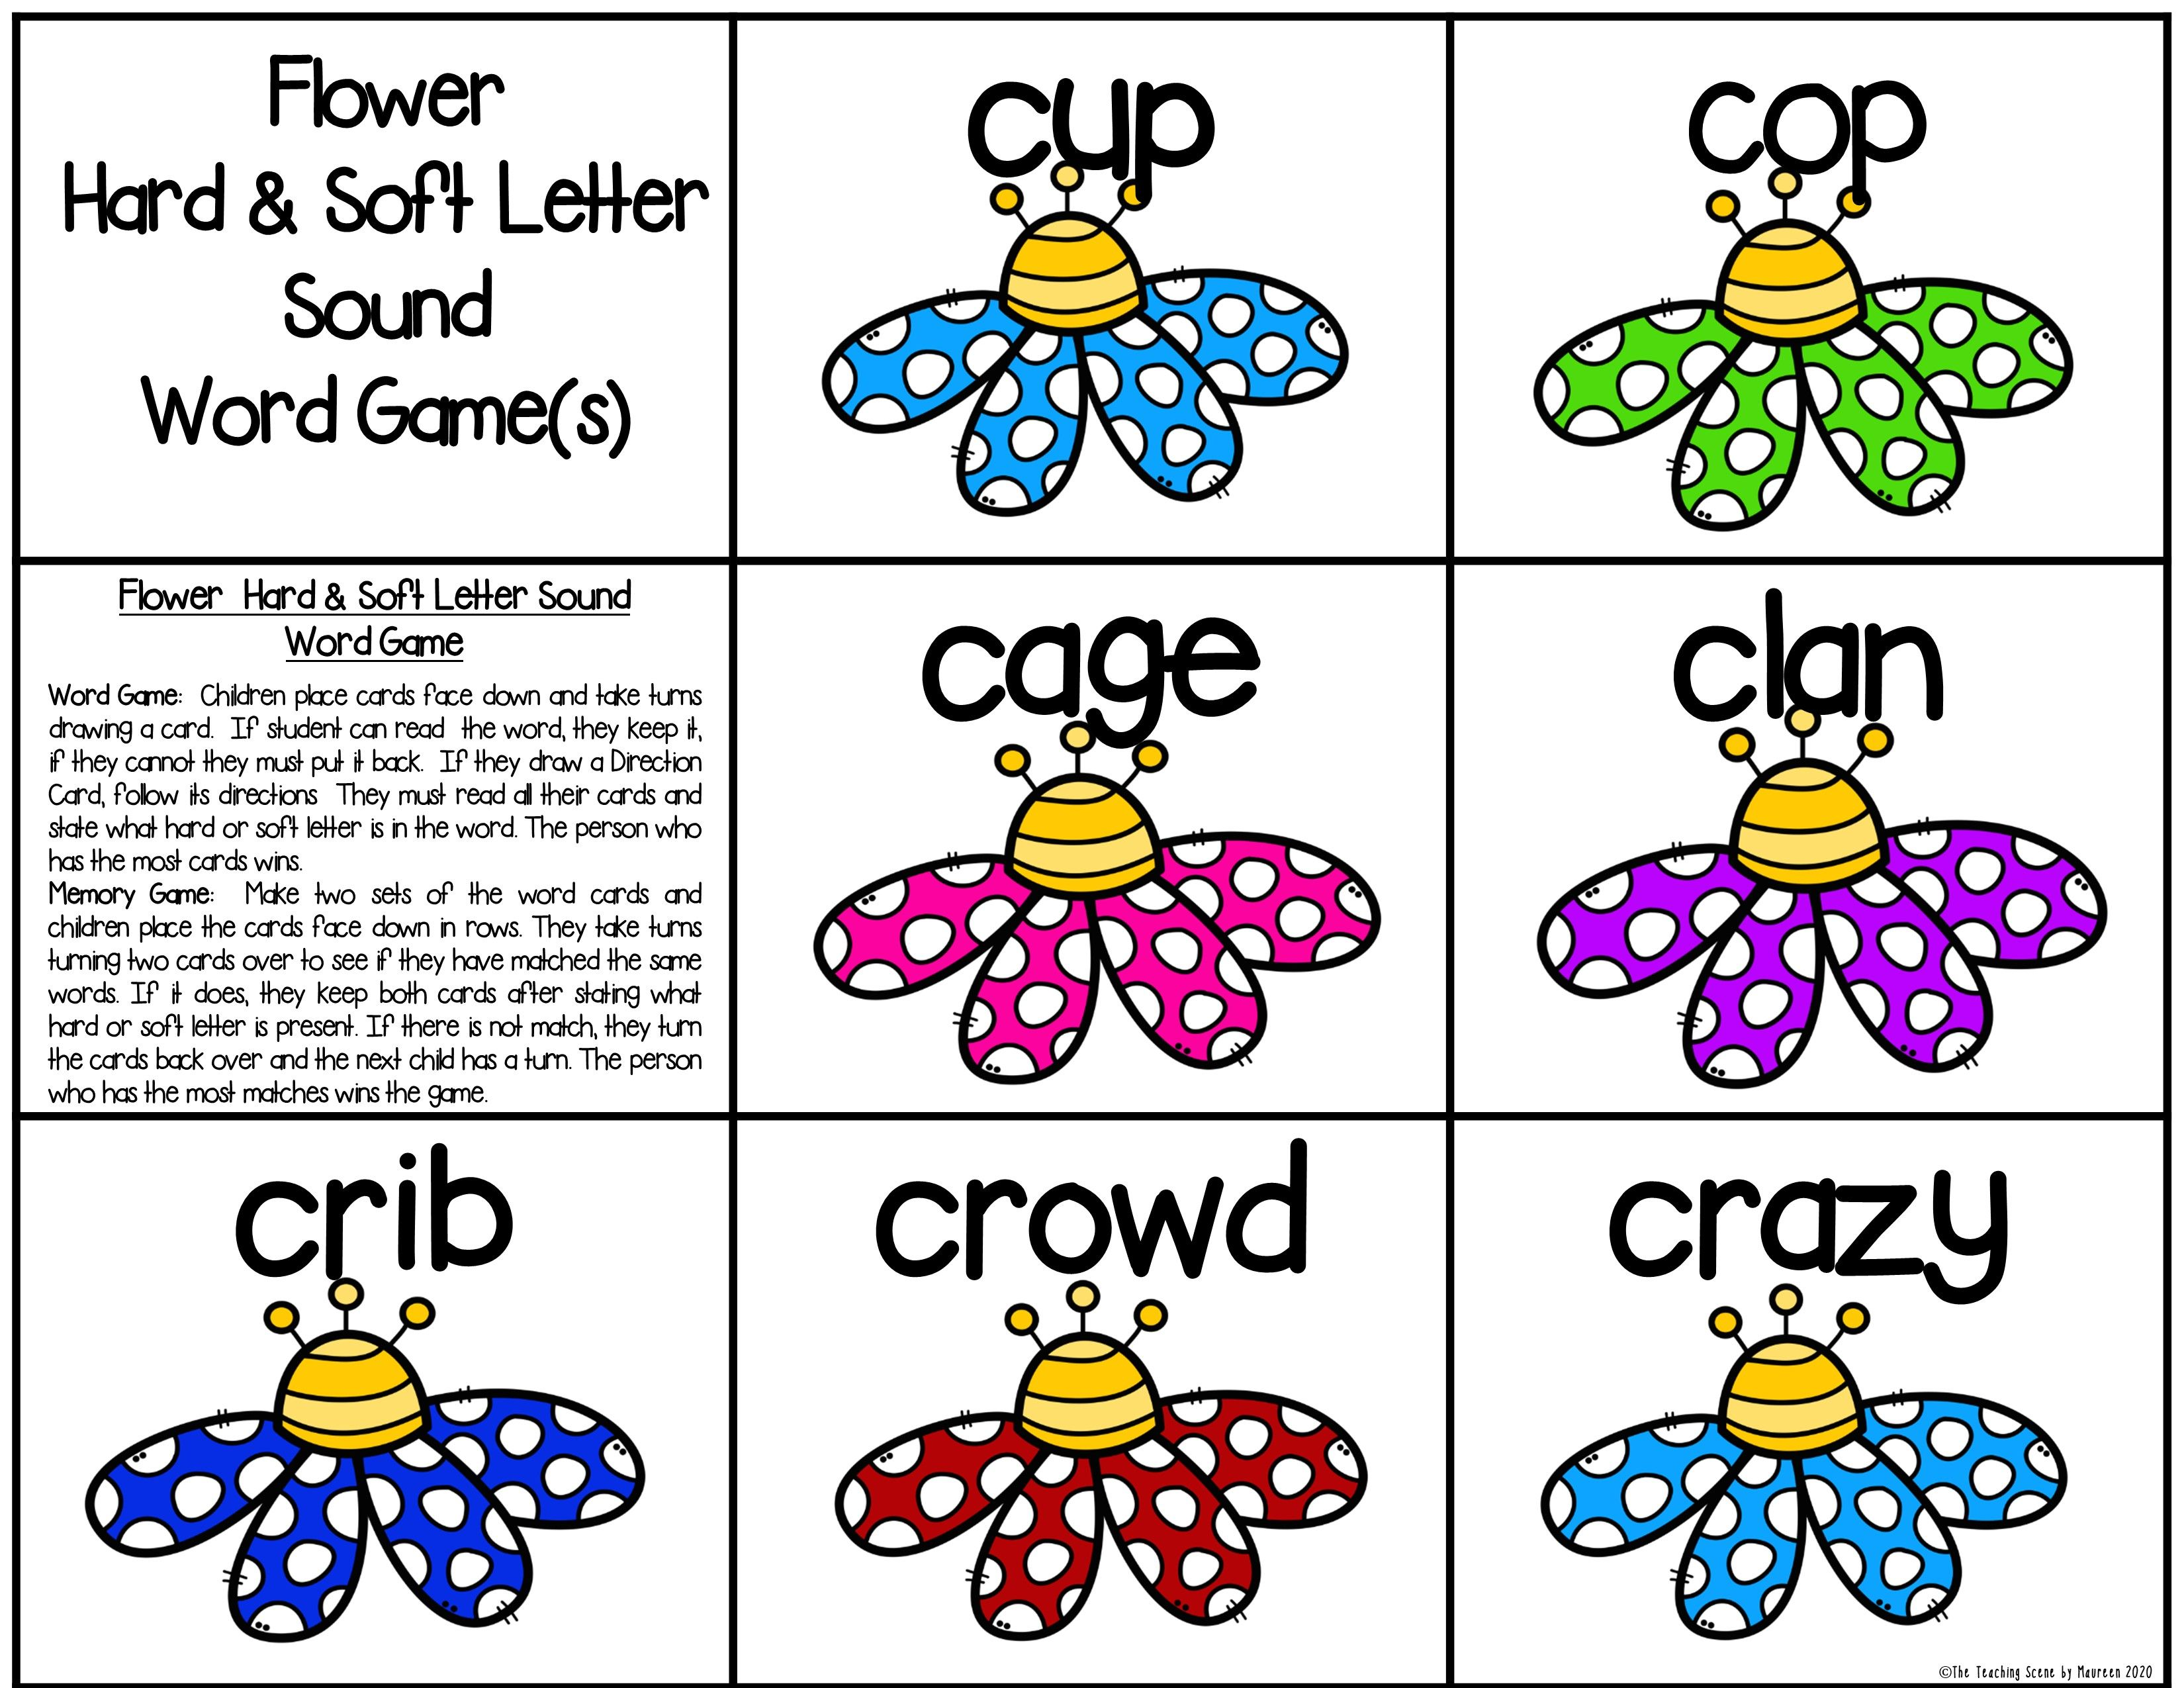 Hard Soft Letter Sounds Of C G Centers Worksheets Center Game Word Sorts Writing Sight Words